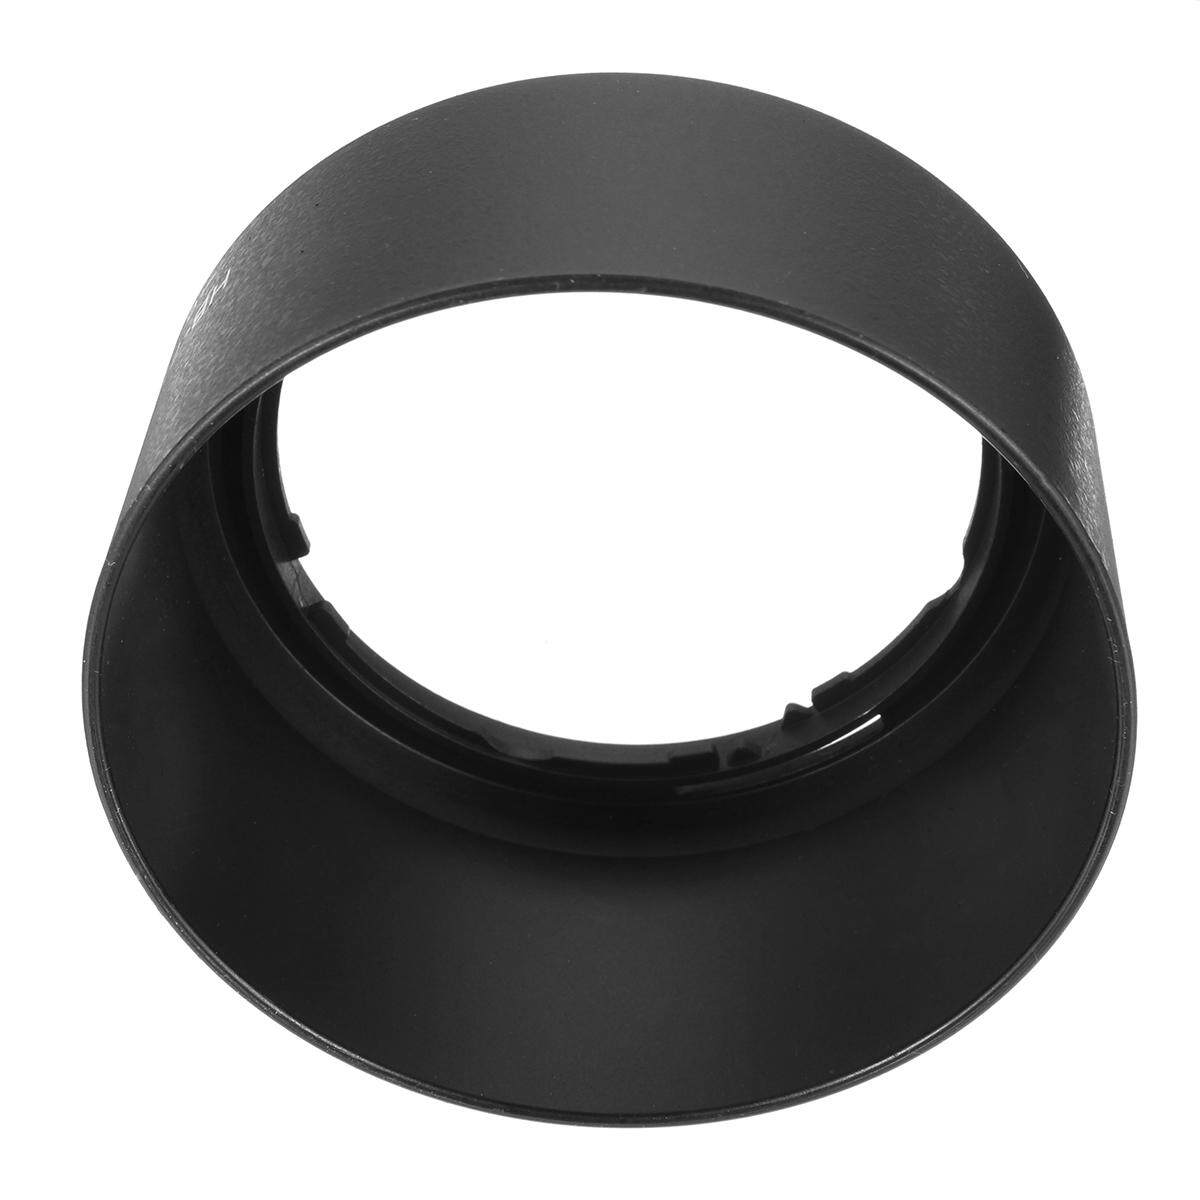 Hb-77 Camera Lens Hood For Nikon Af-P Dx Nikkor 70-300mm F/4.5-6.3g Ed/vr By Teamtop.